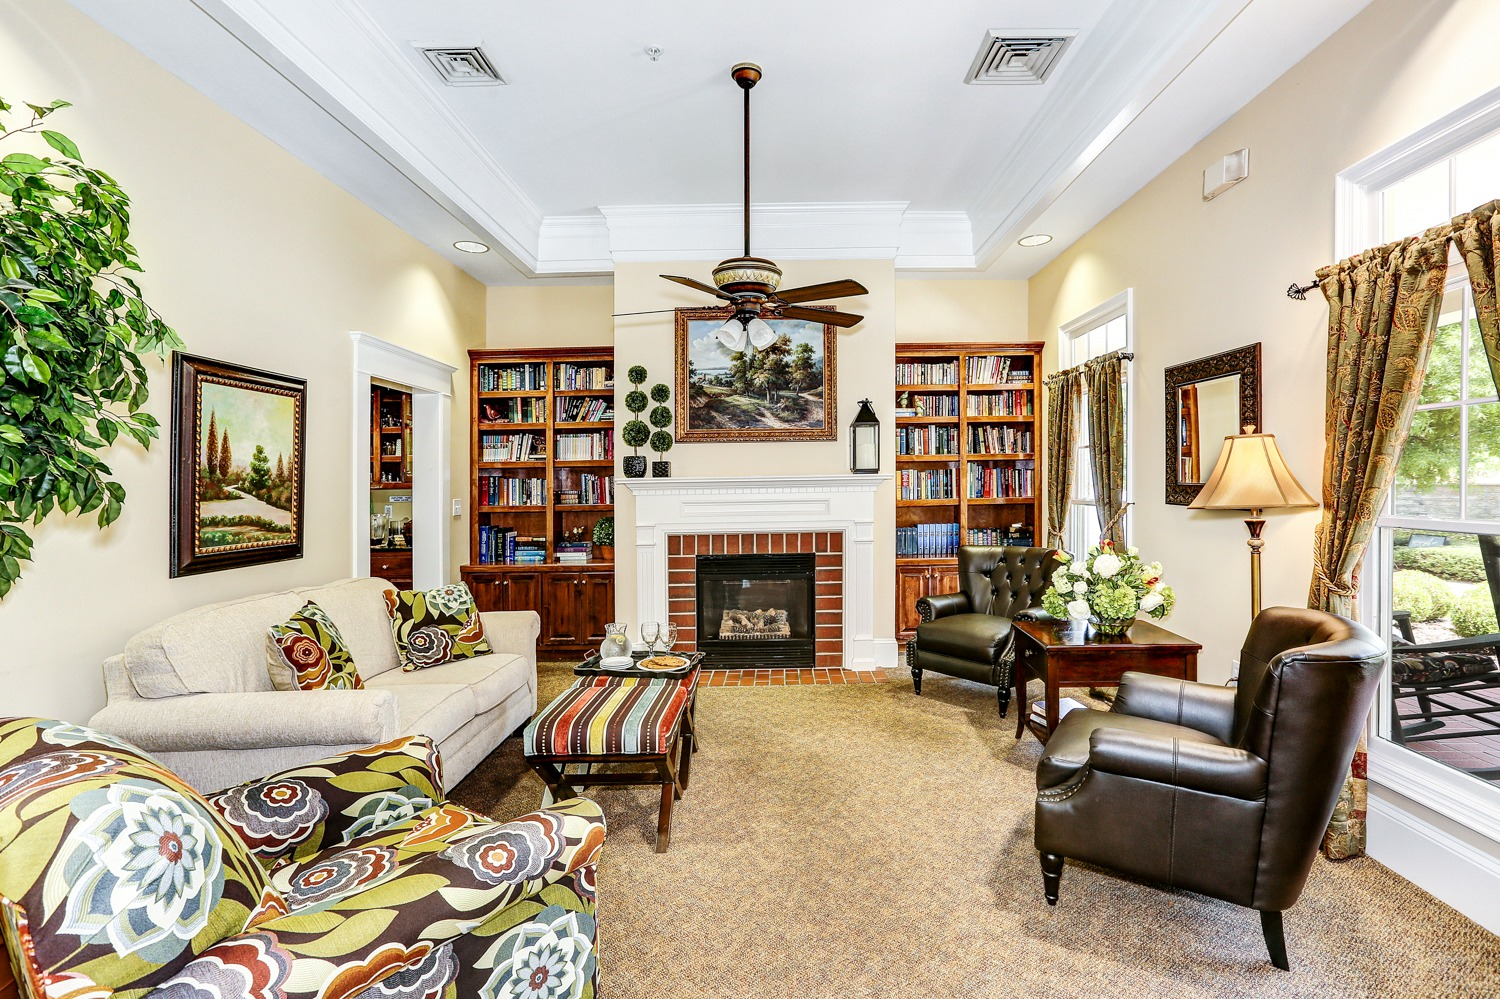 Mountain Brook - common area living room